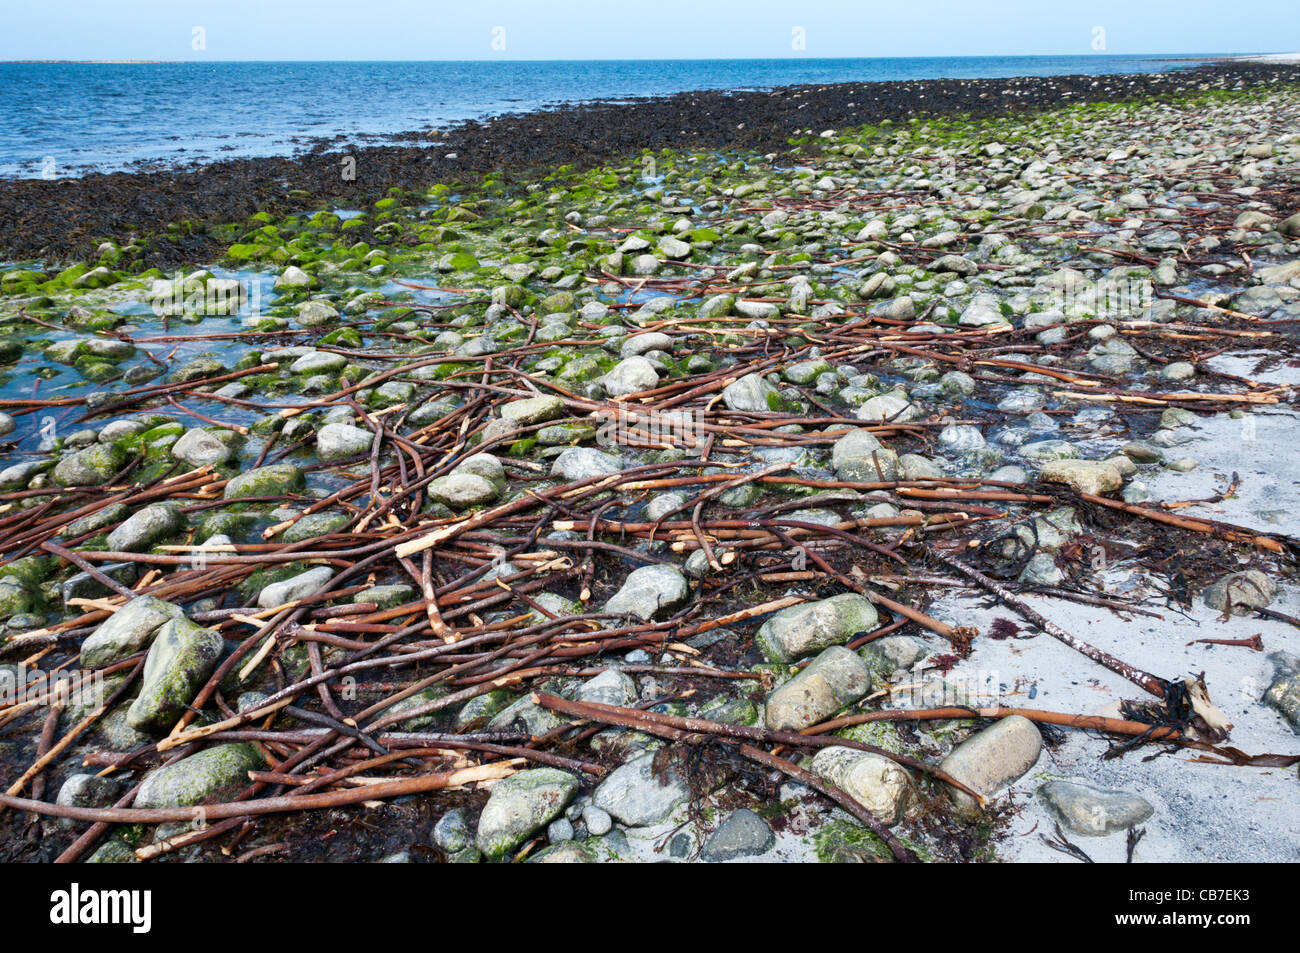 Kelp stems washed up on a Hebridean beach. - Stock Image